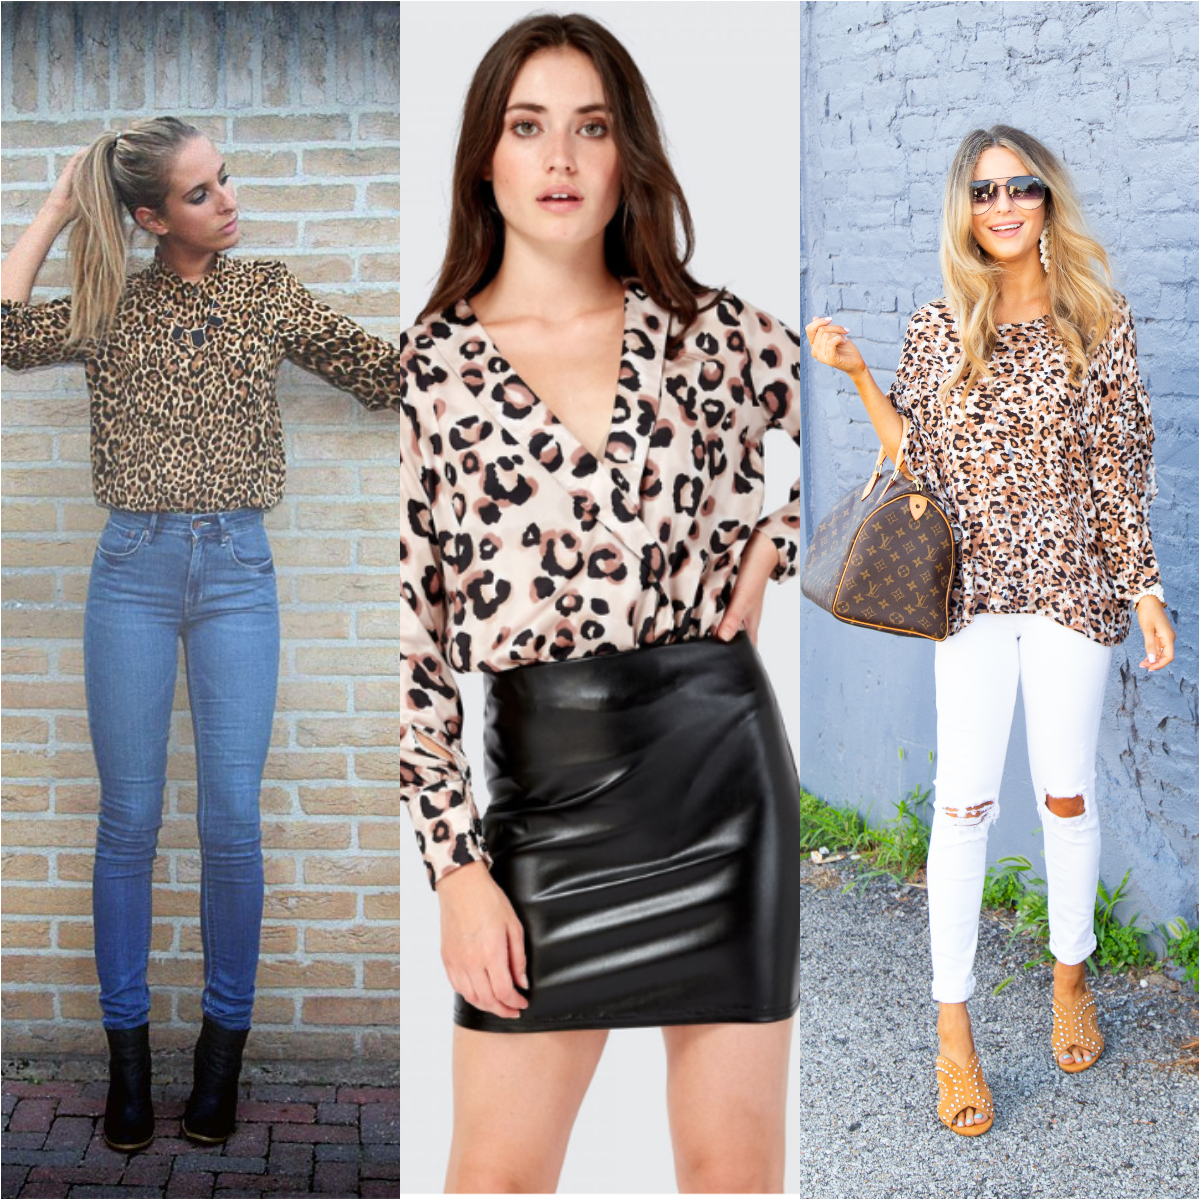 Animal print fashion trend – How to style animal print this summer?